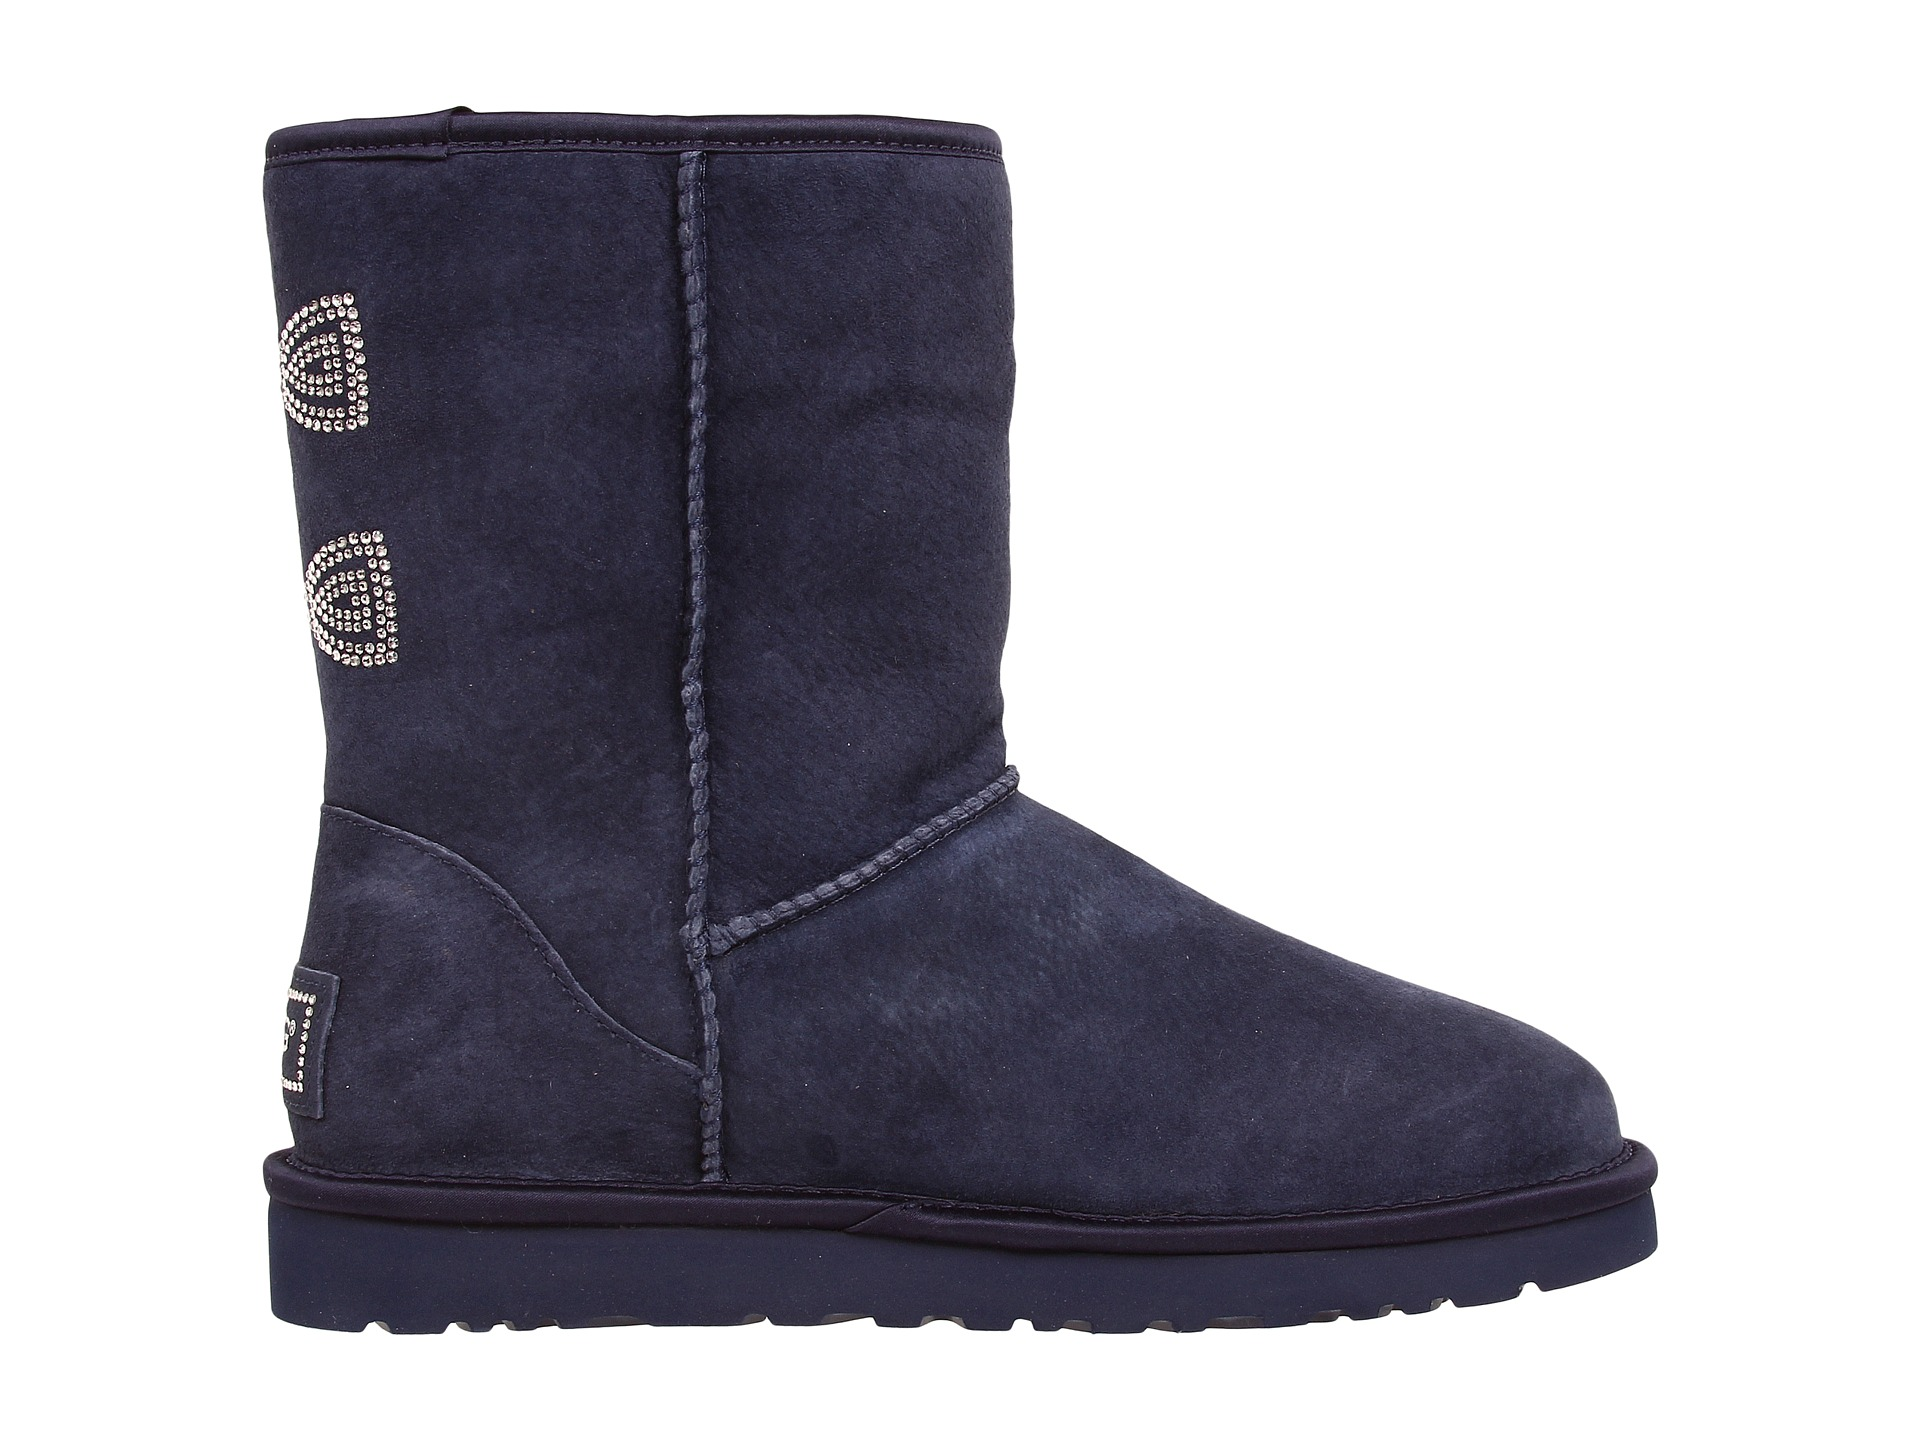 a743a798b Short Ugg Boots With Bow On Side